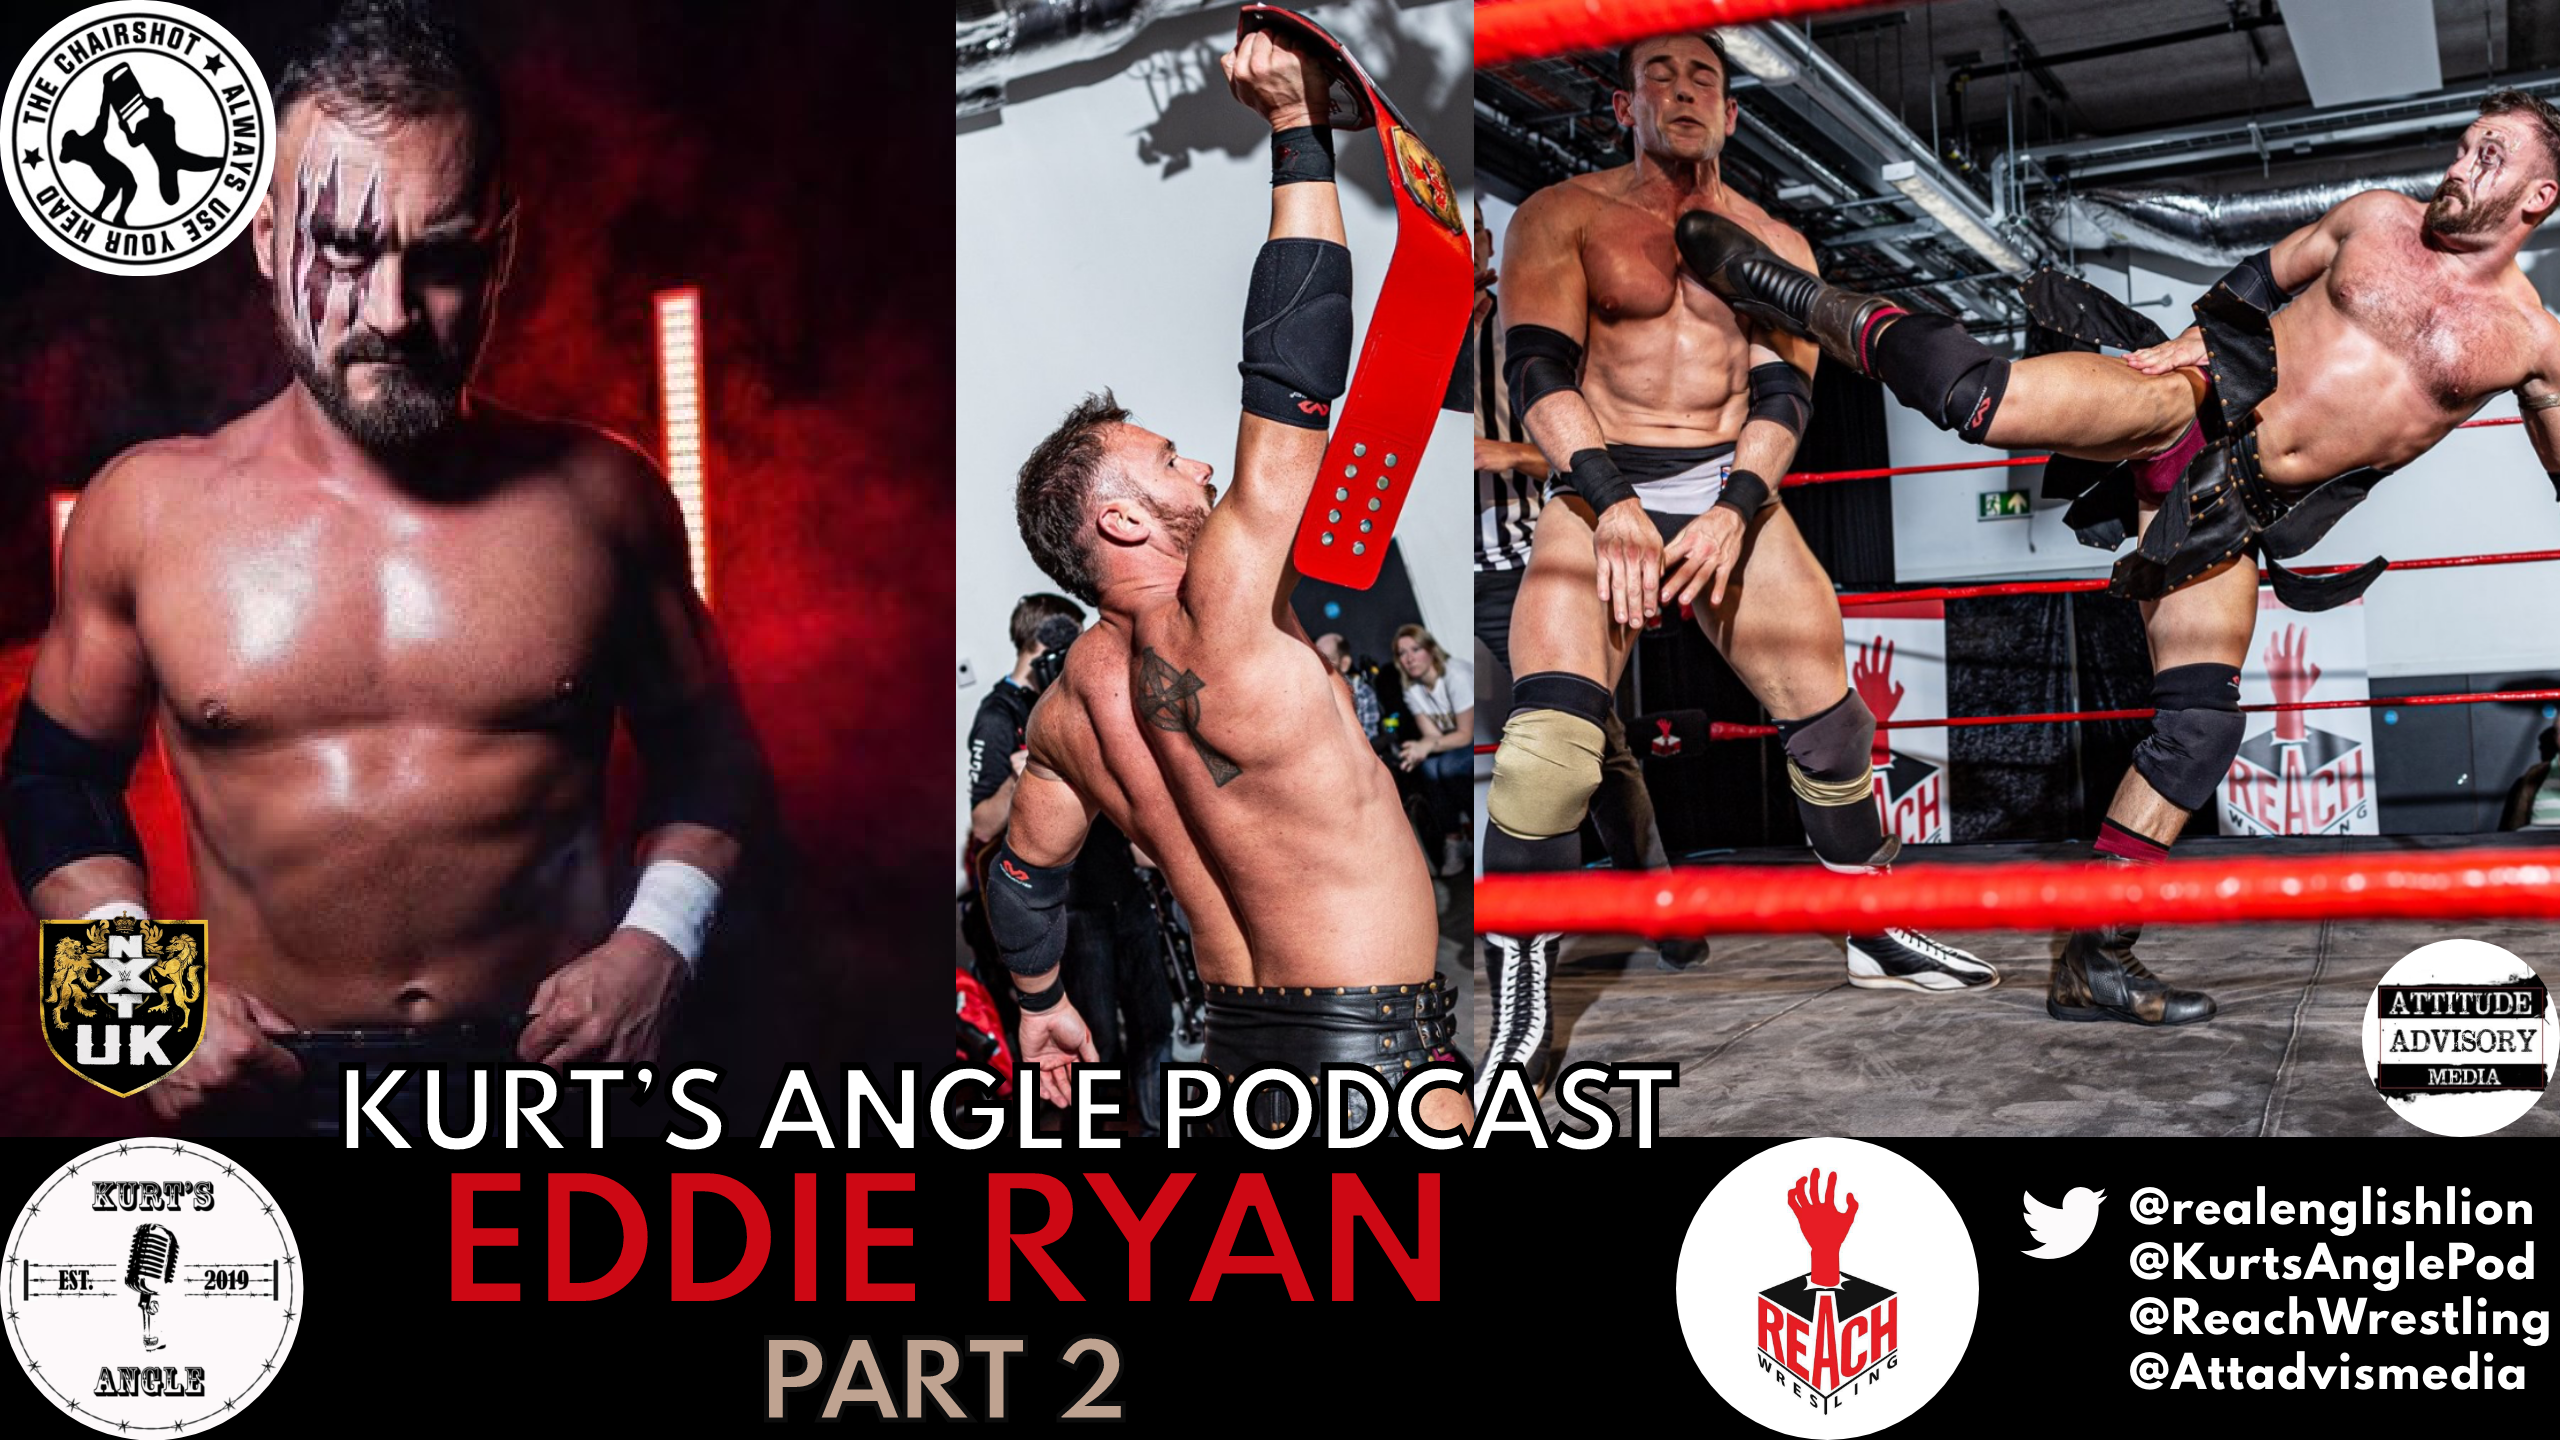 Kurt's Angle 12th June 2020 Eddie Ryan 2YT